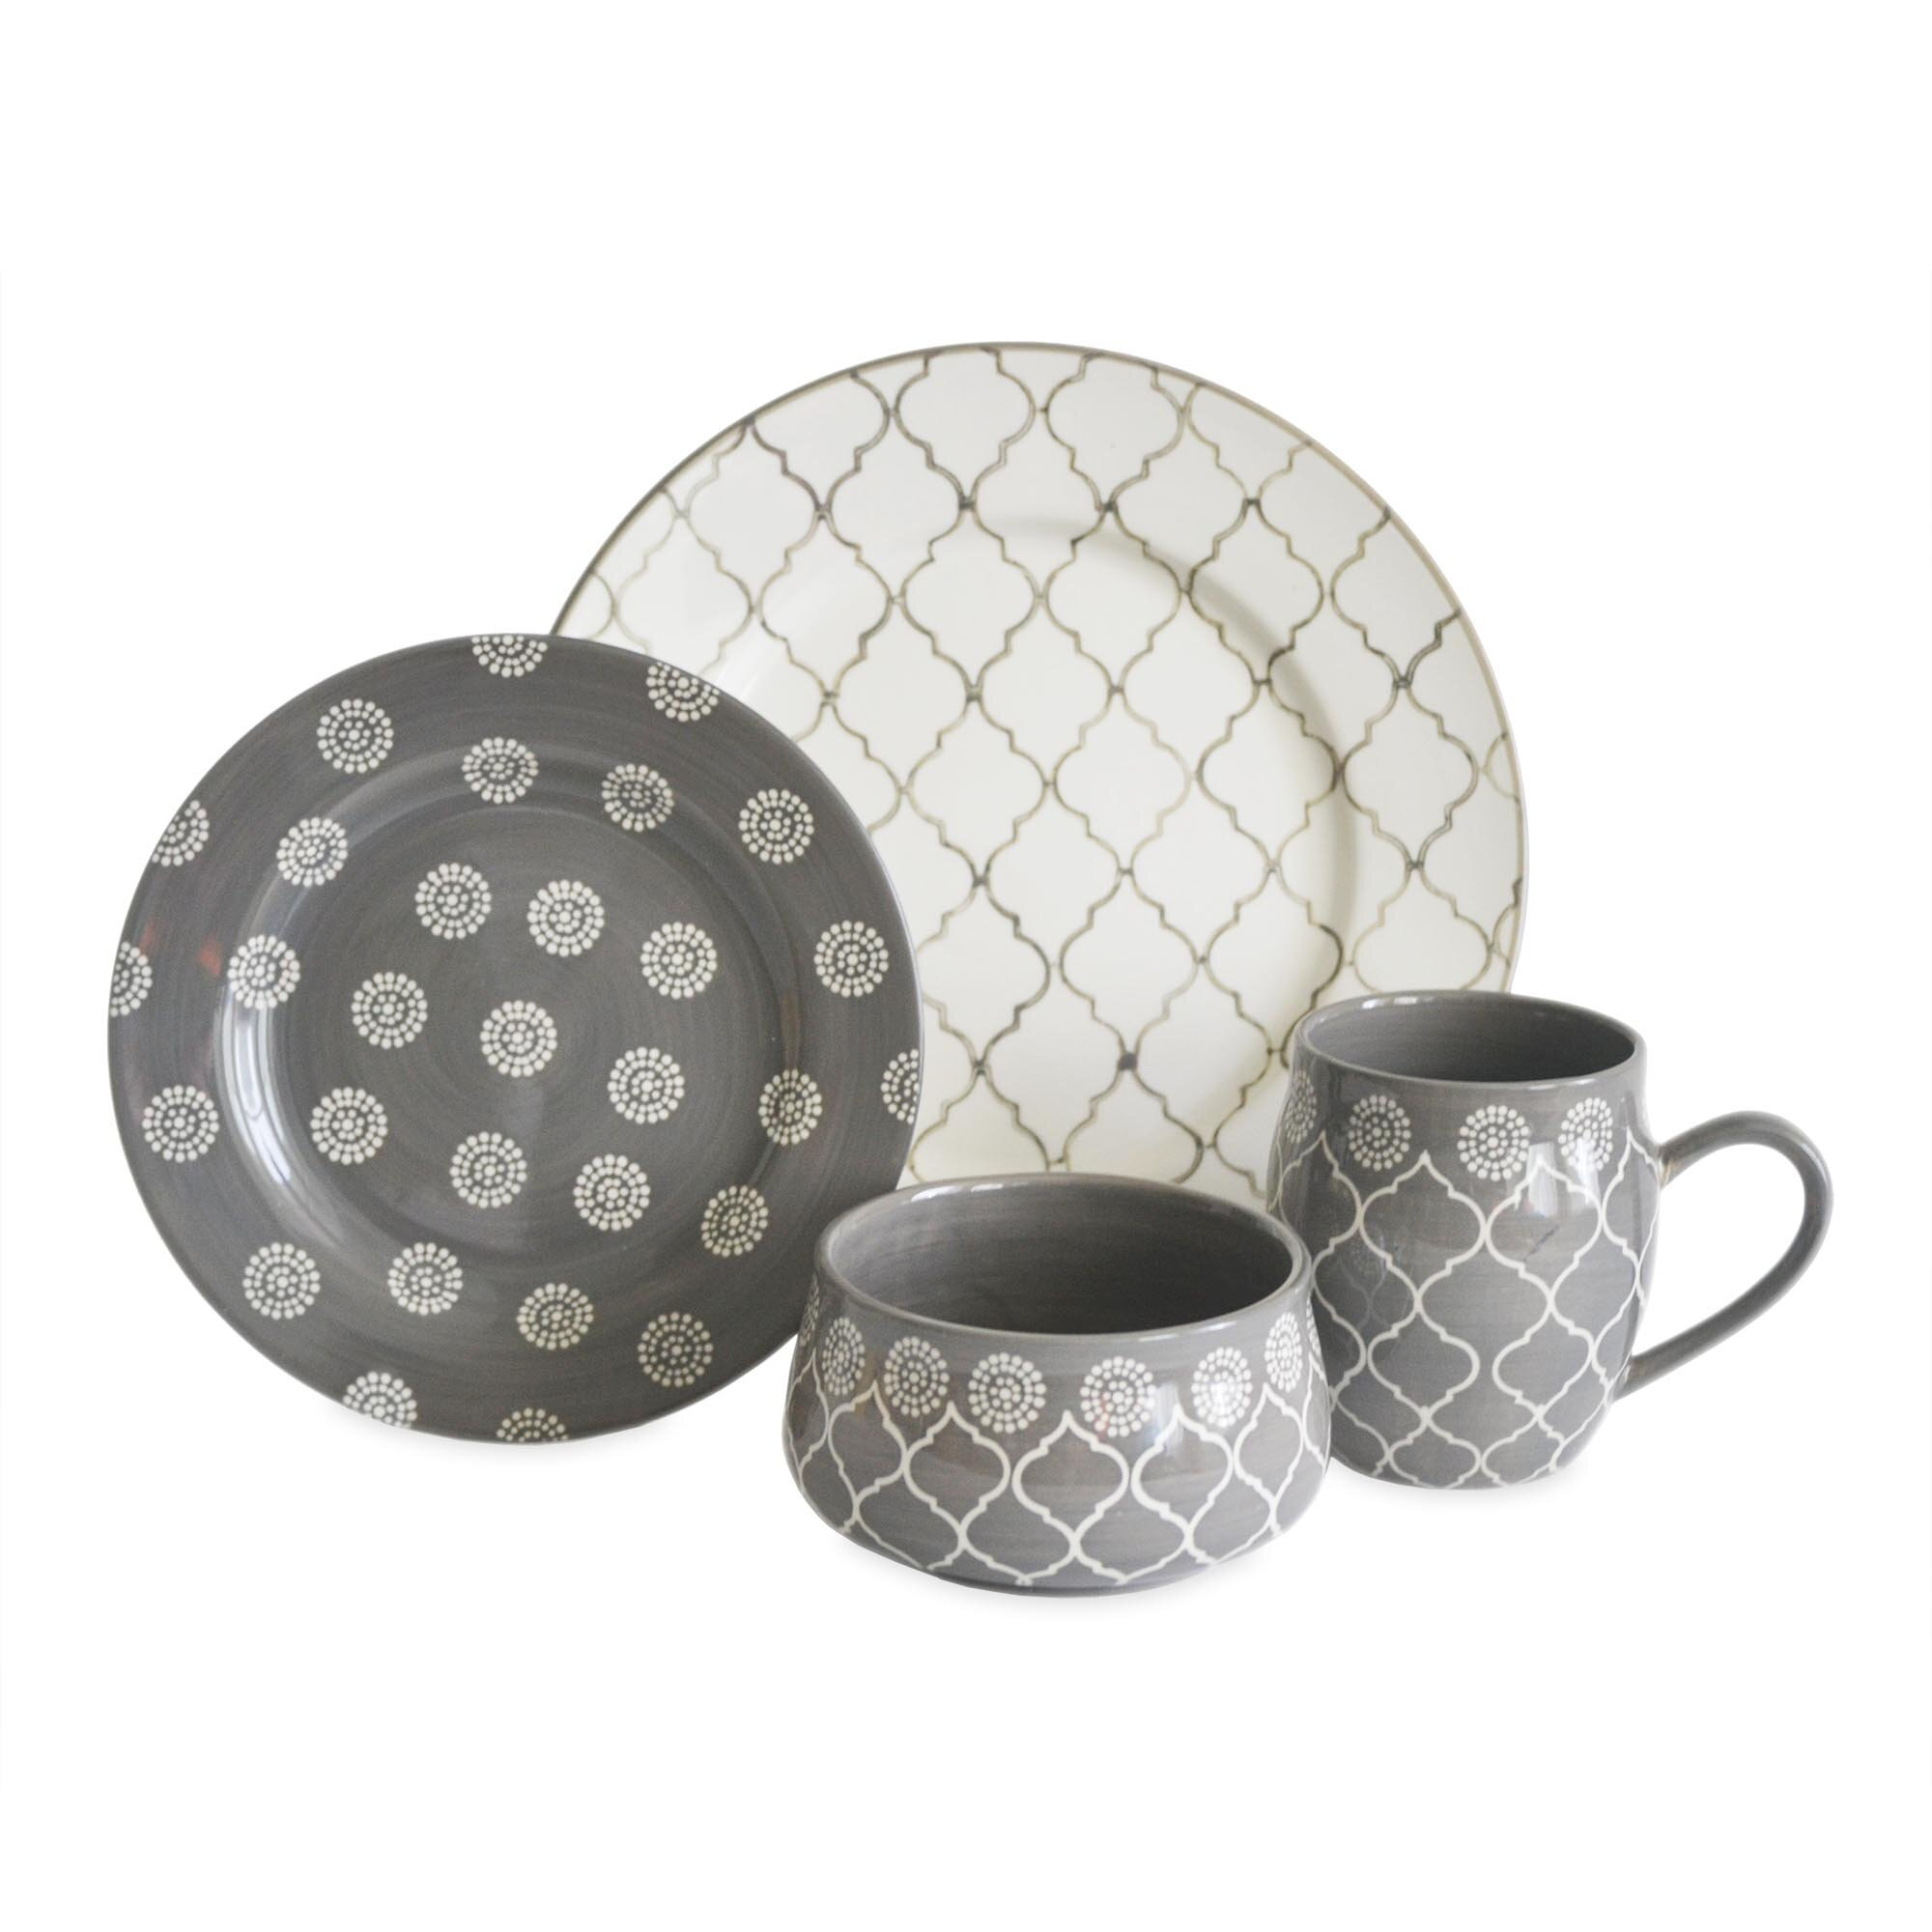 Baum Moroccan 16 Piece Dinnerware Set Amp Reviews Wayfair